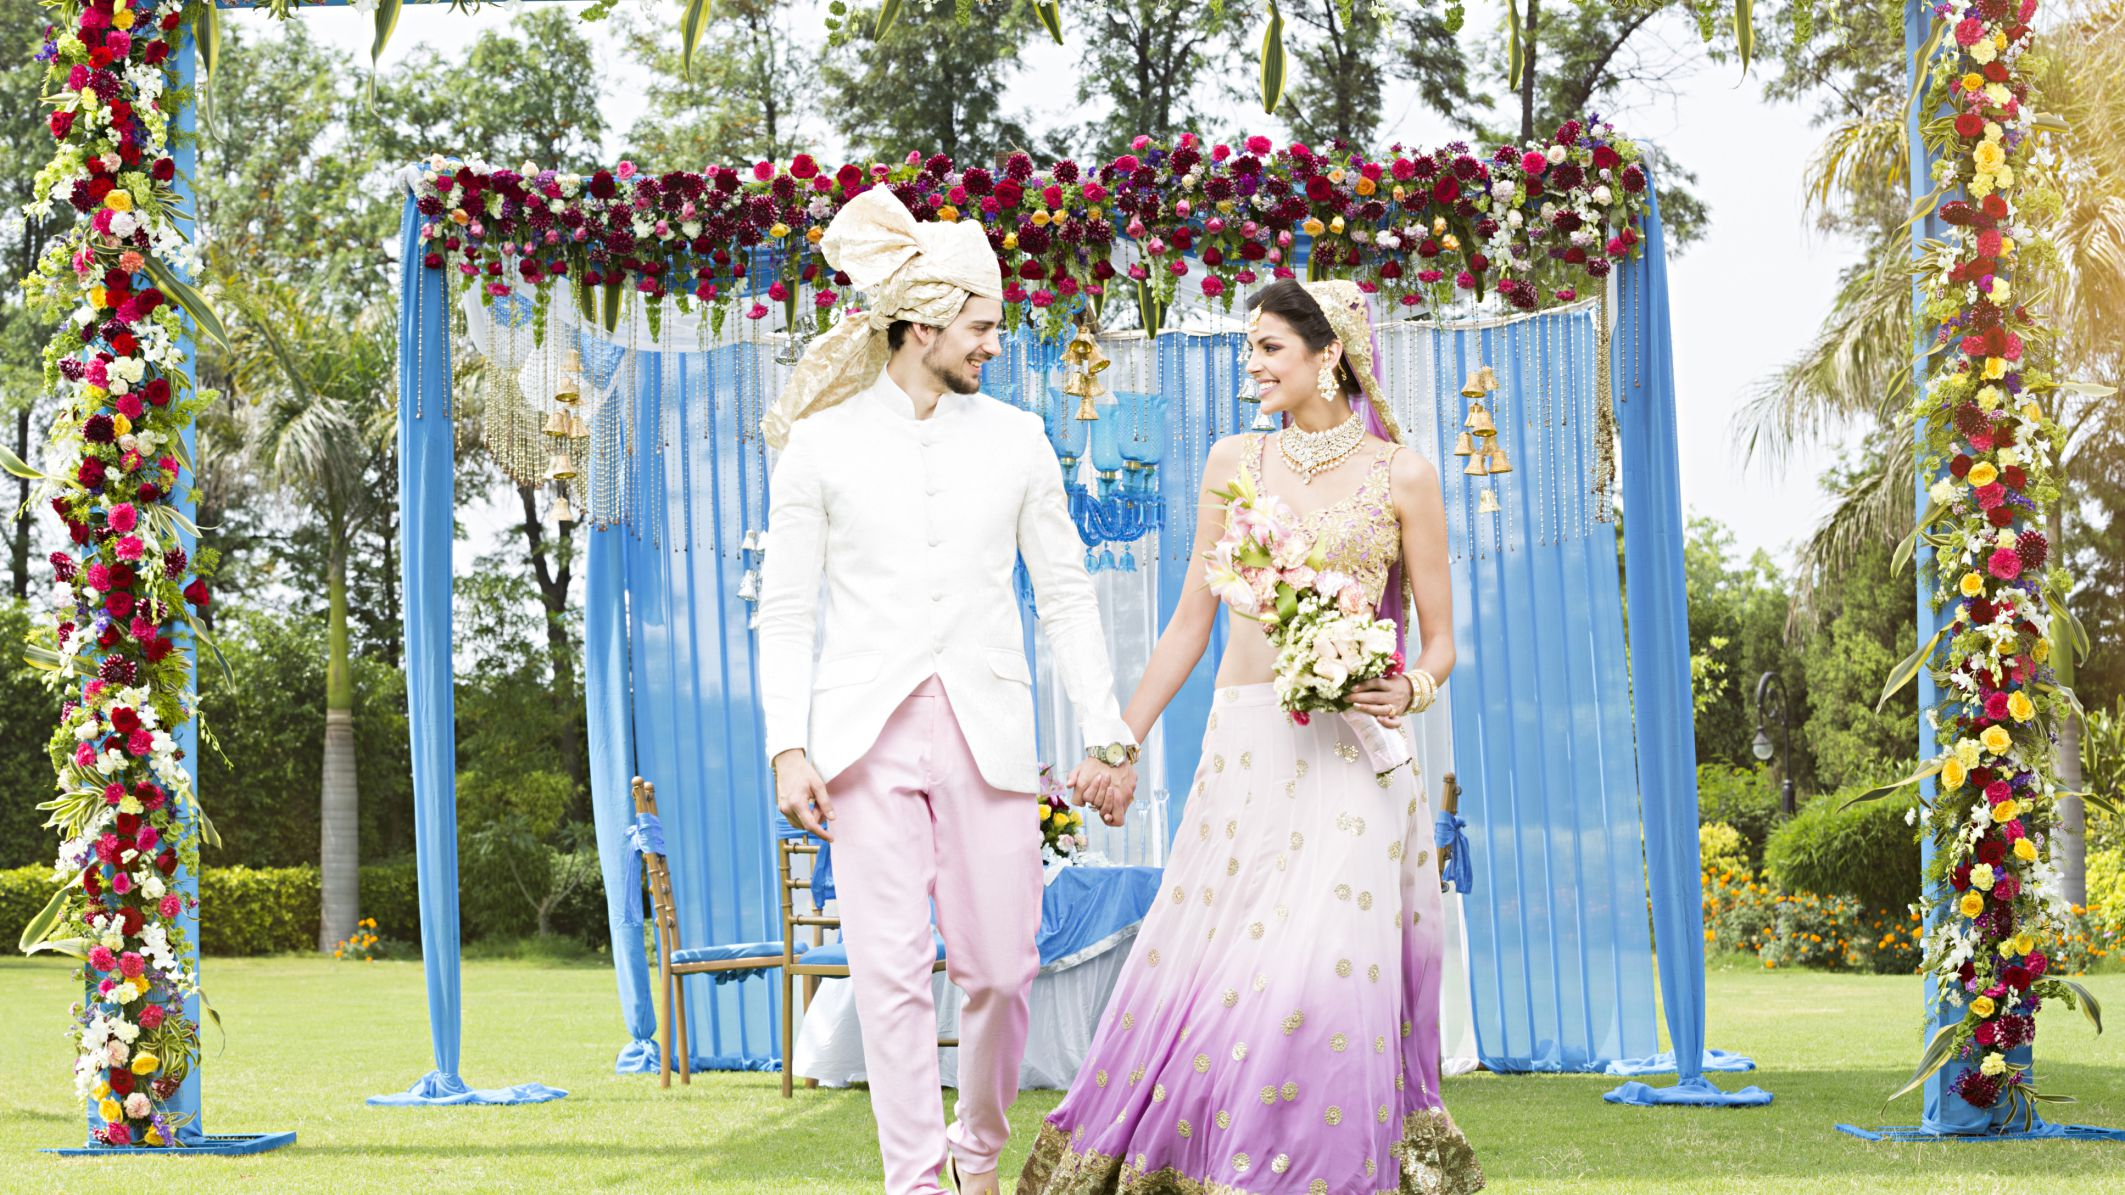 Legal Requirements for Getting Married in India